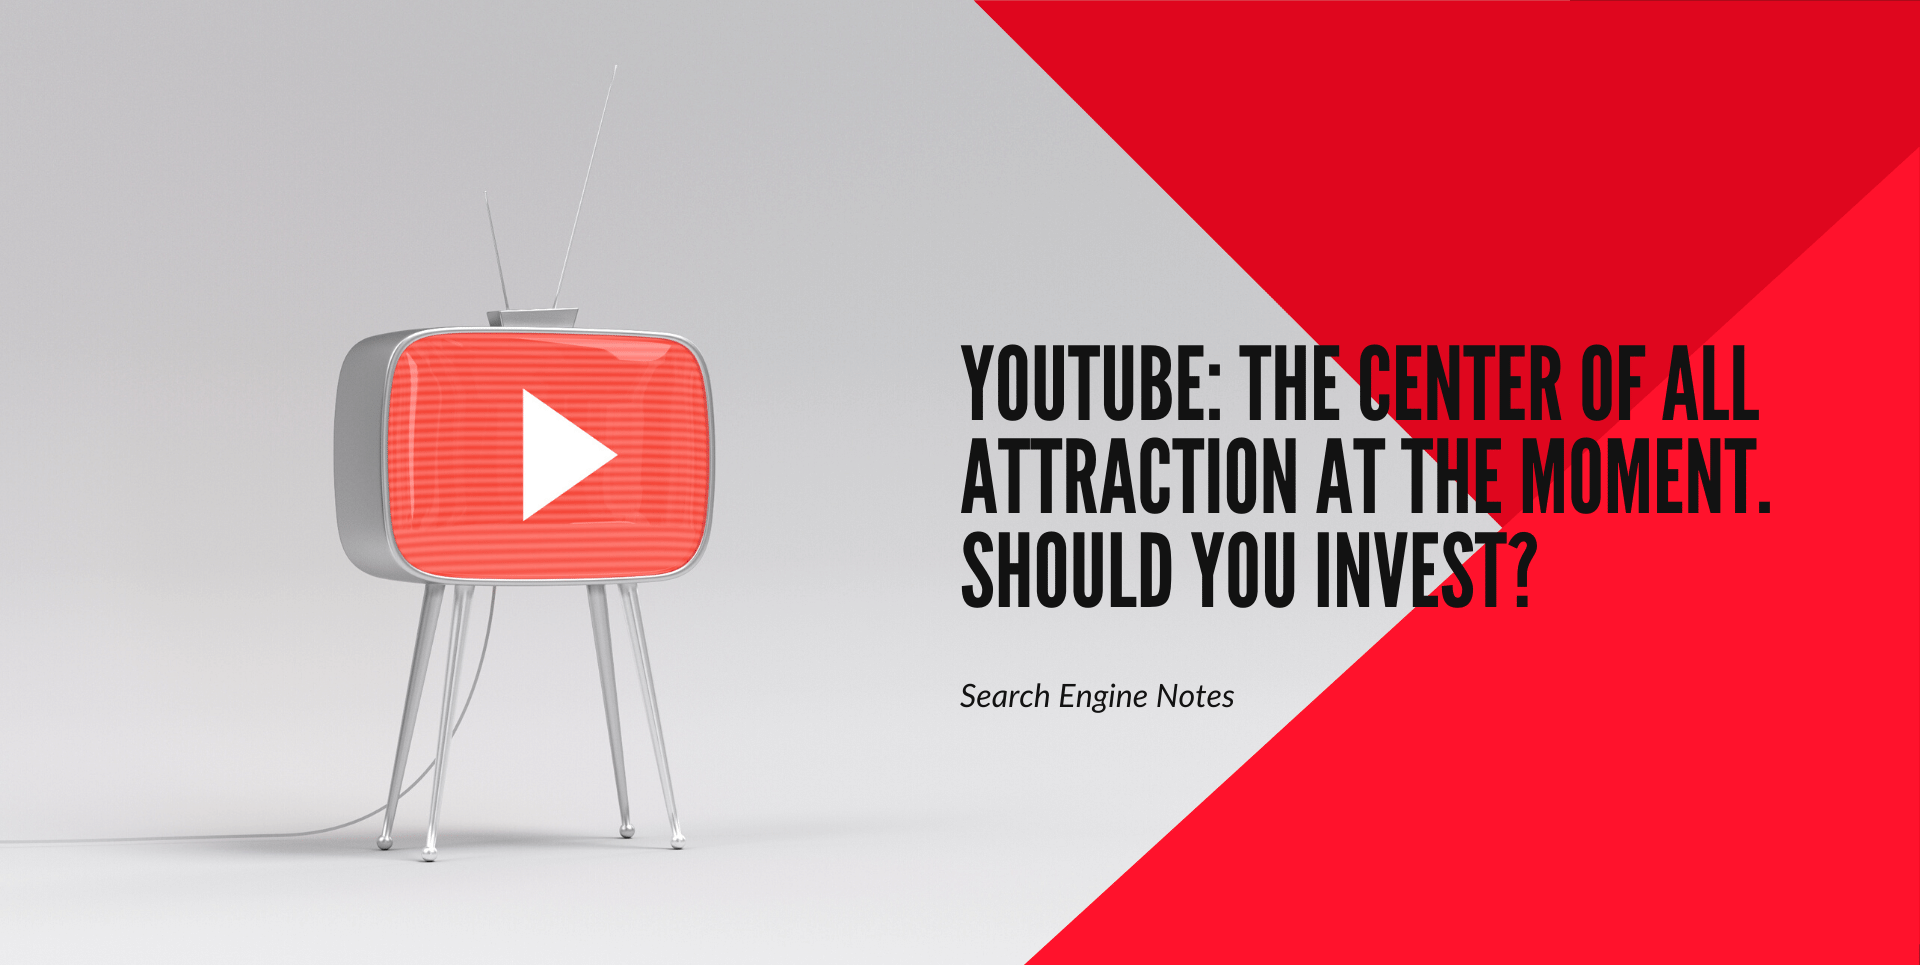 YouTube: The Center Of All Attraction At The Moment. Should You Invest?